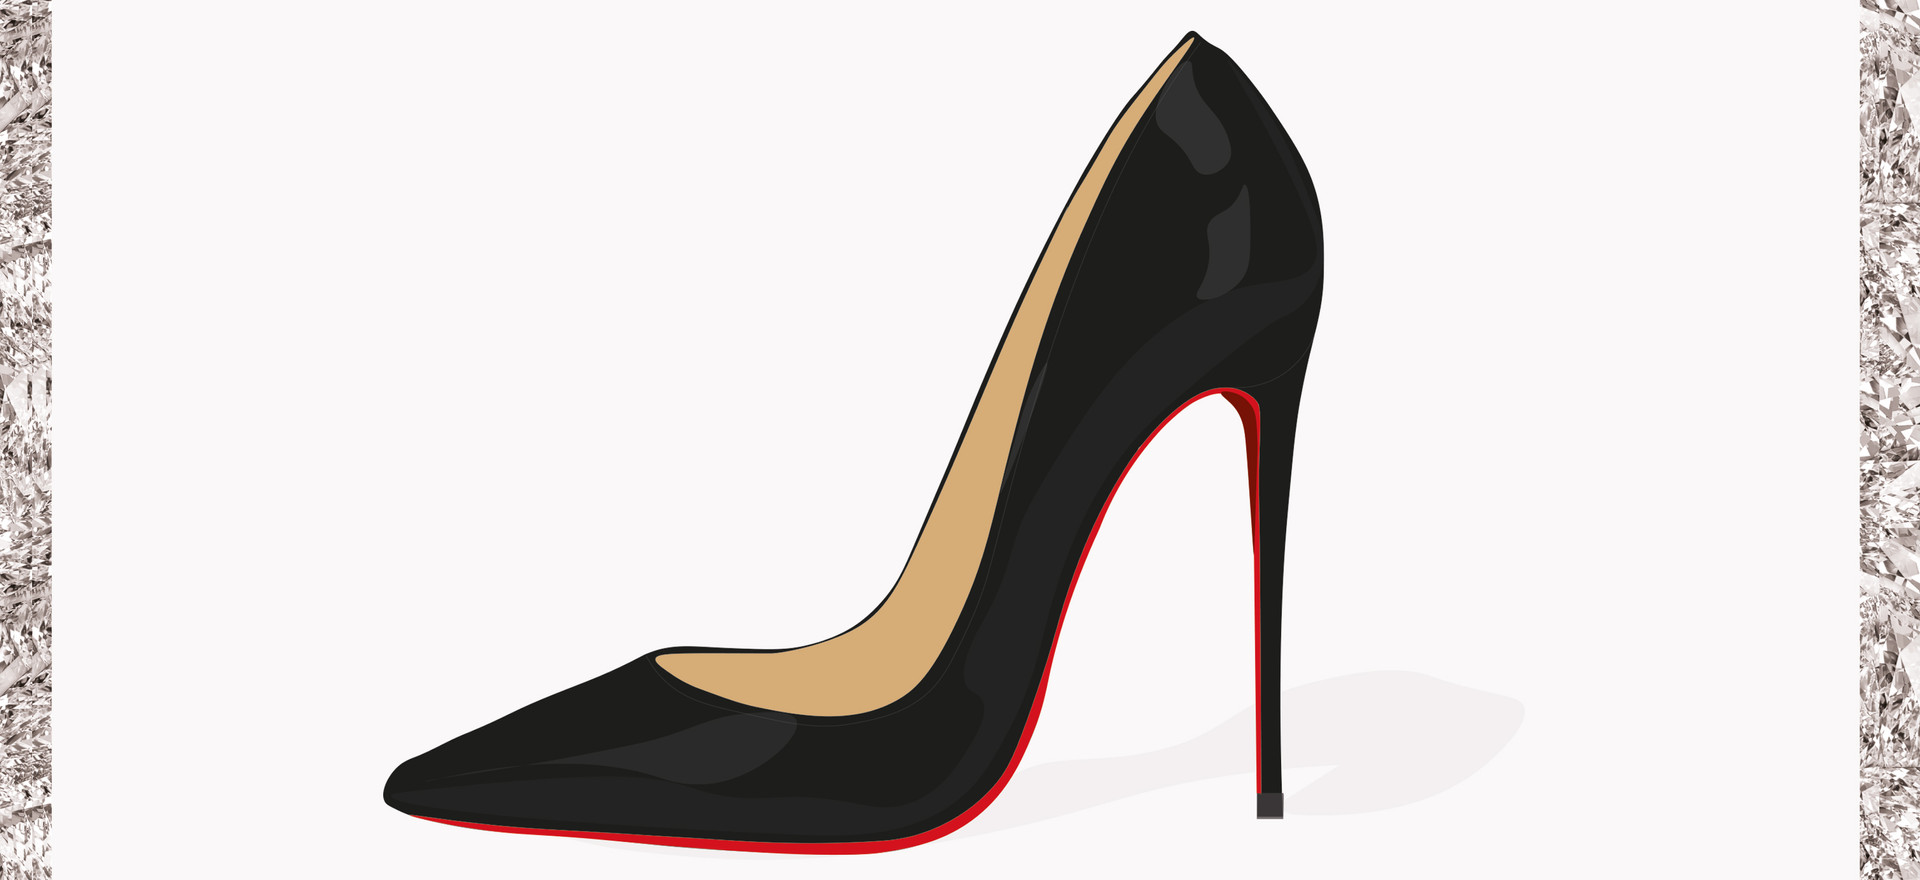 Louboutin Shoe Illustration